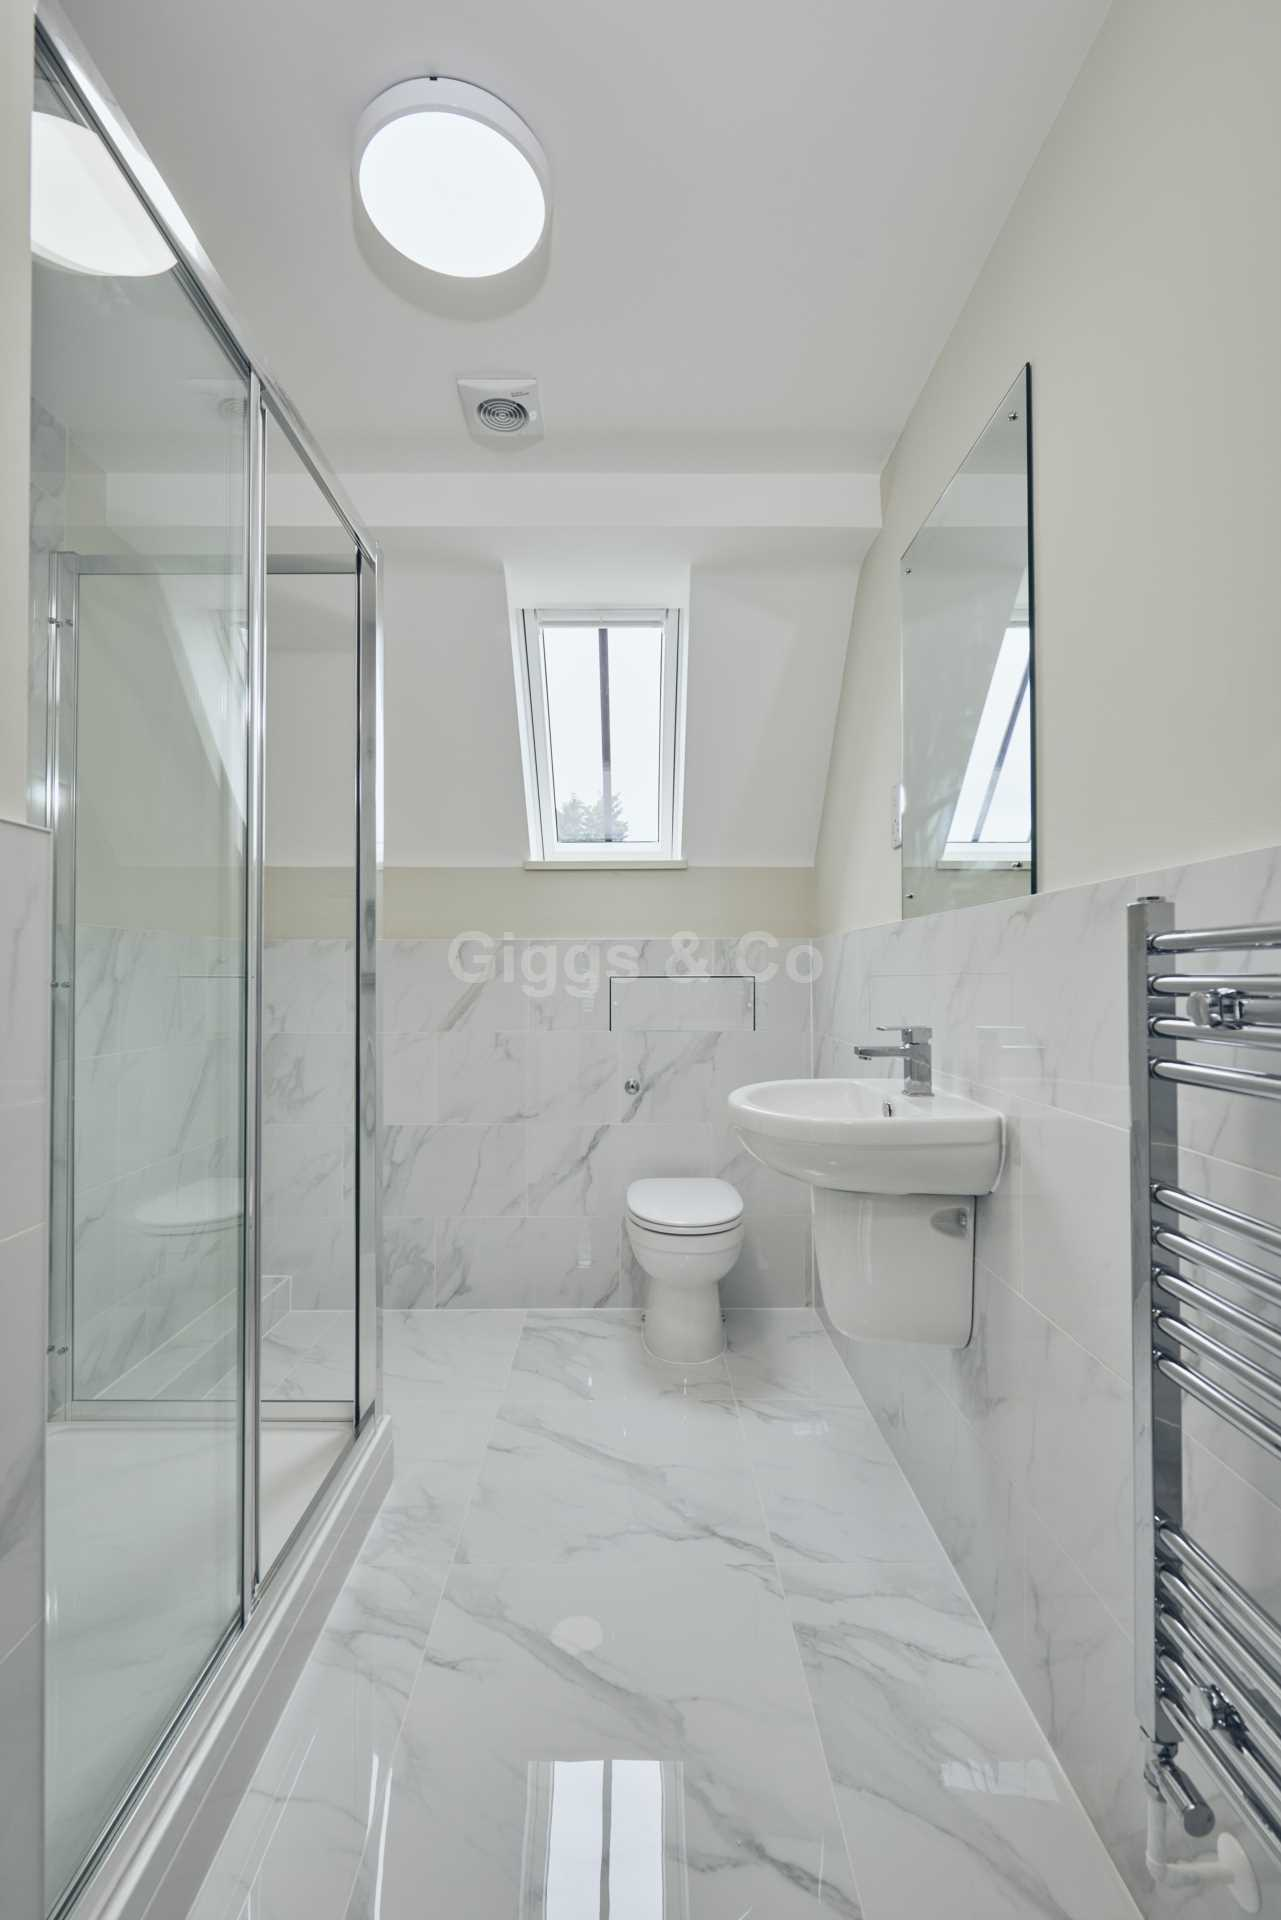 2 bed apartment to rent in East Street, St Ives  - Property Image 13